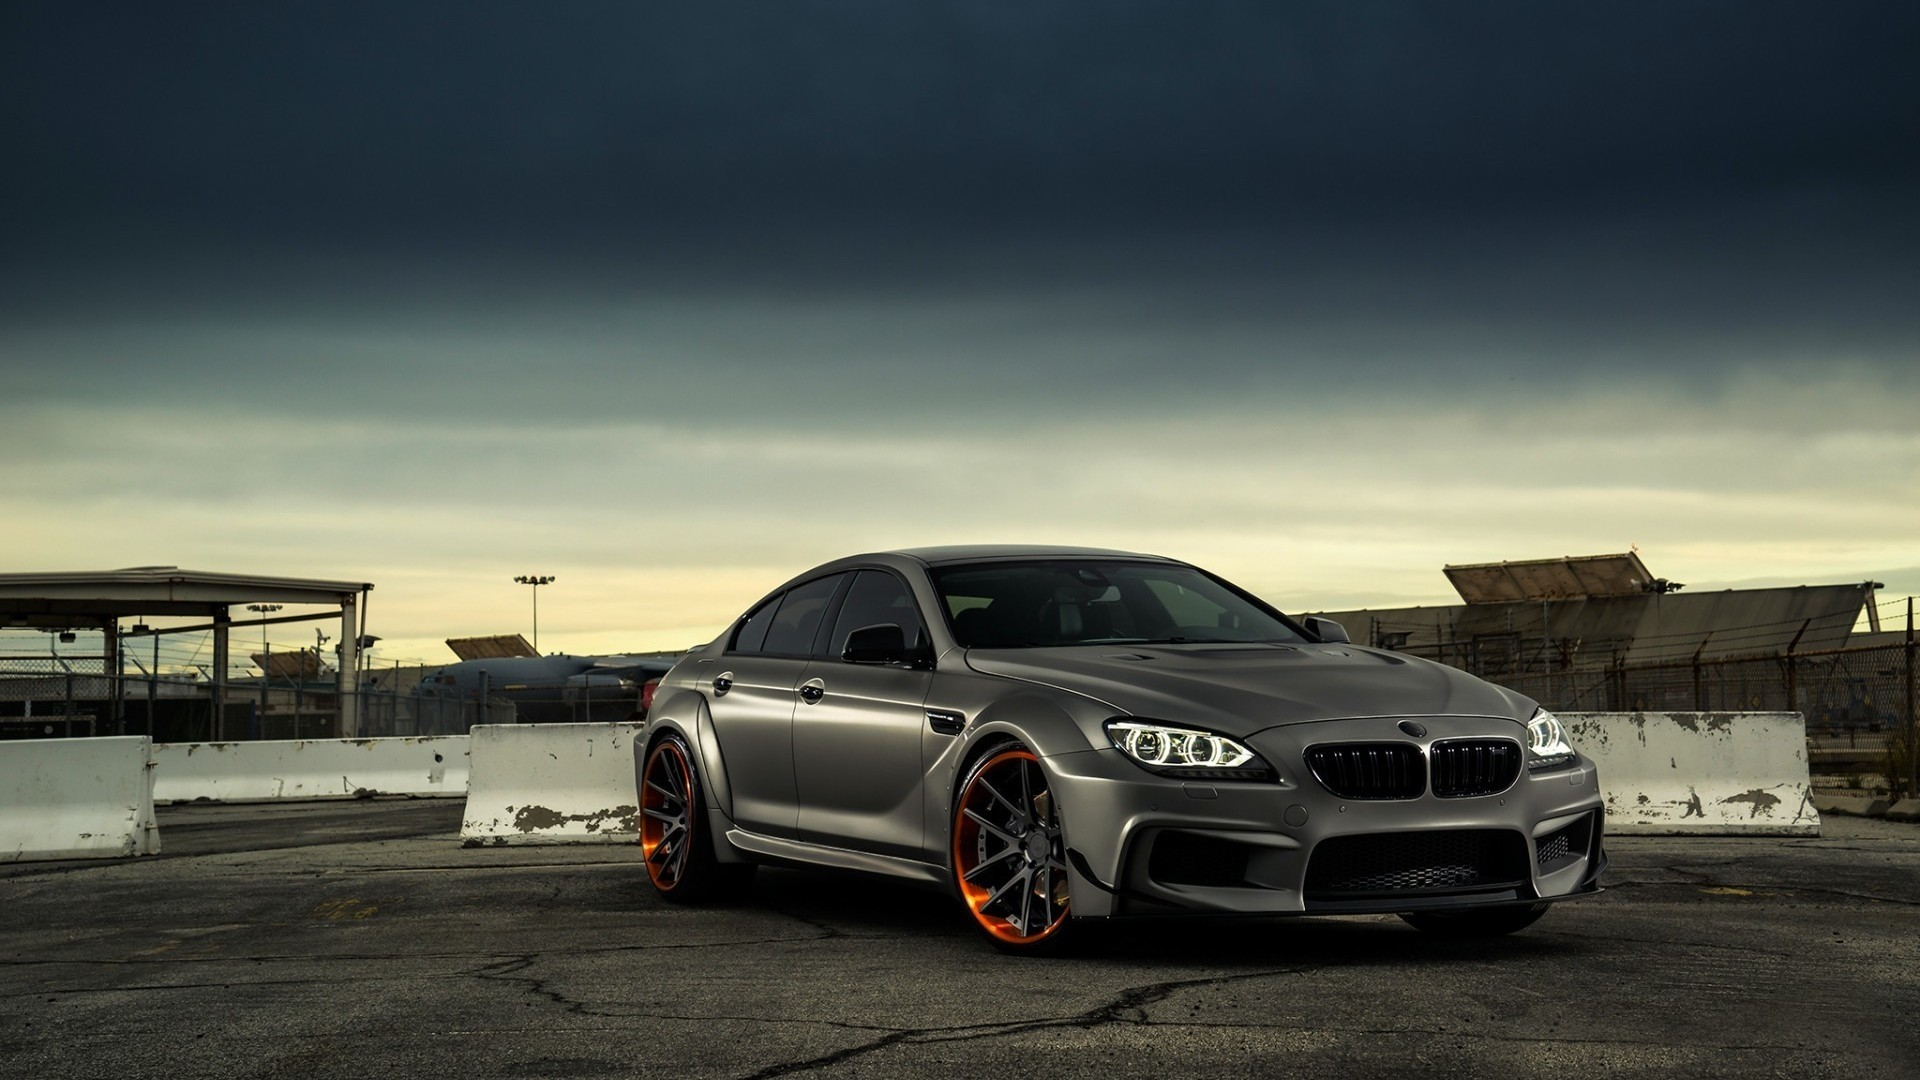 1920x1080 BMW M6 Tuning Crystal City Car 2014 | El Tony .